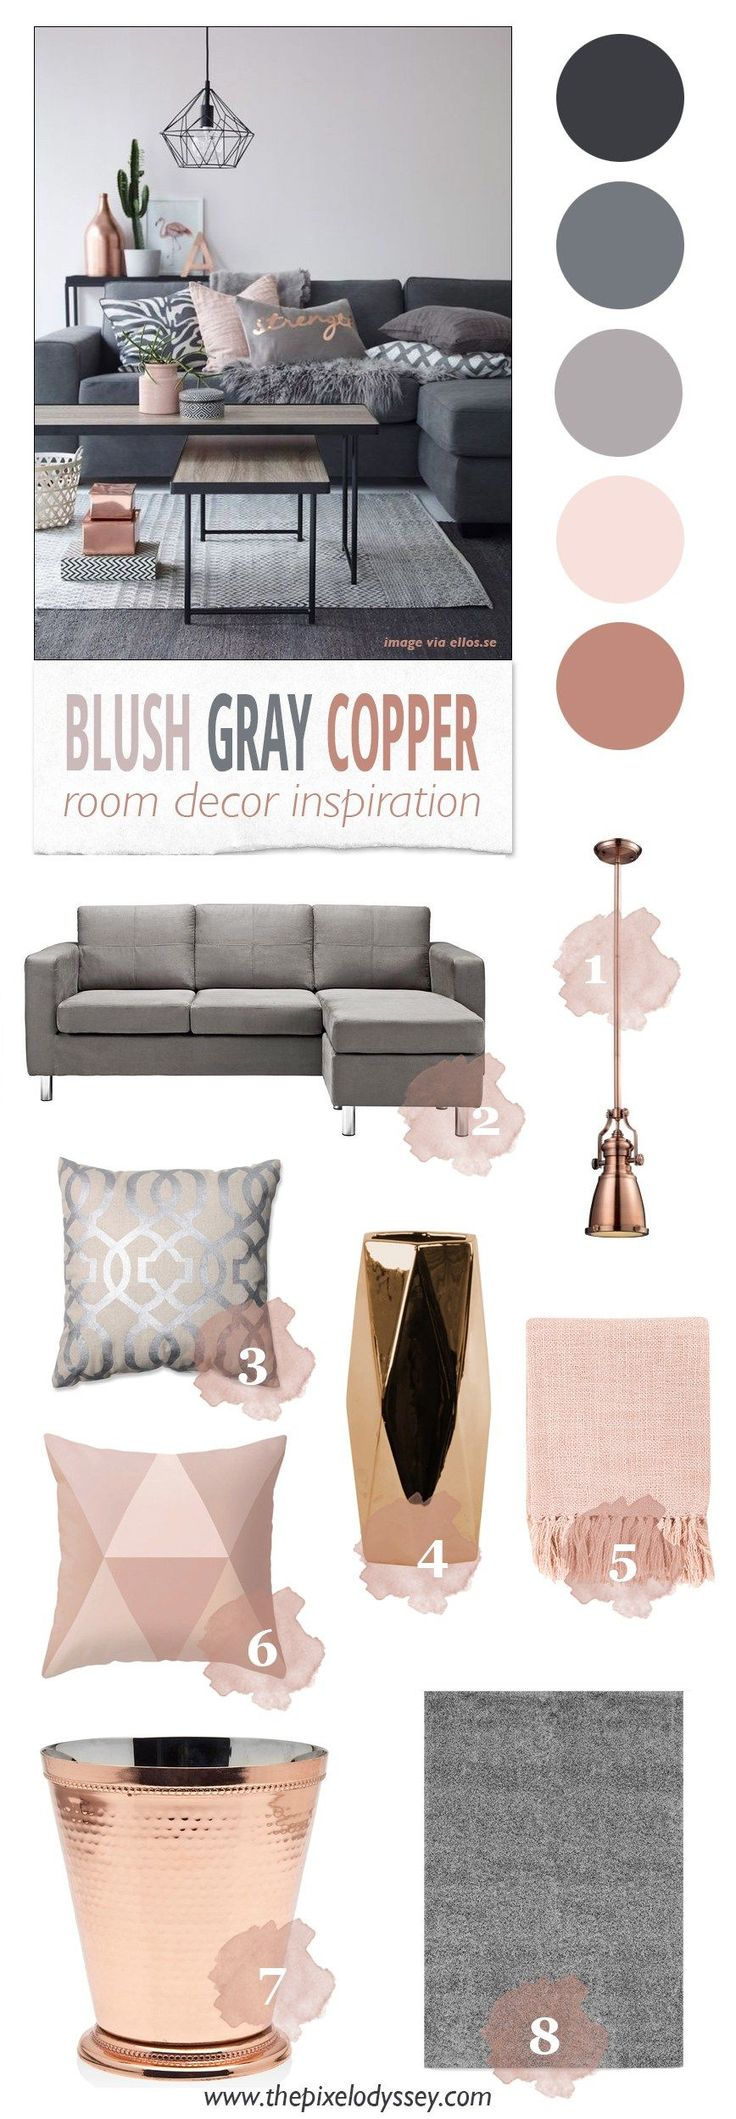 Blush Gray Copper Room Decor Inspiration Living Colors